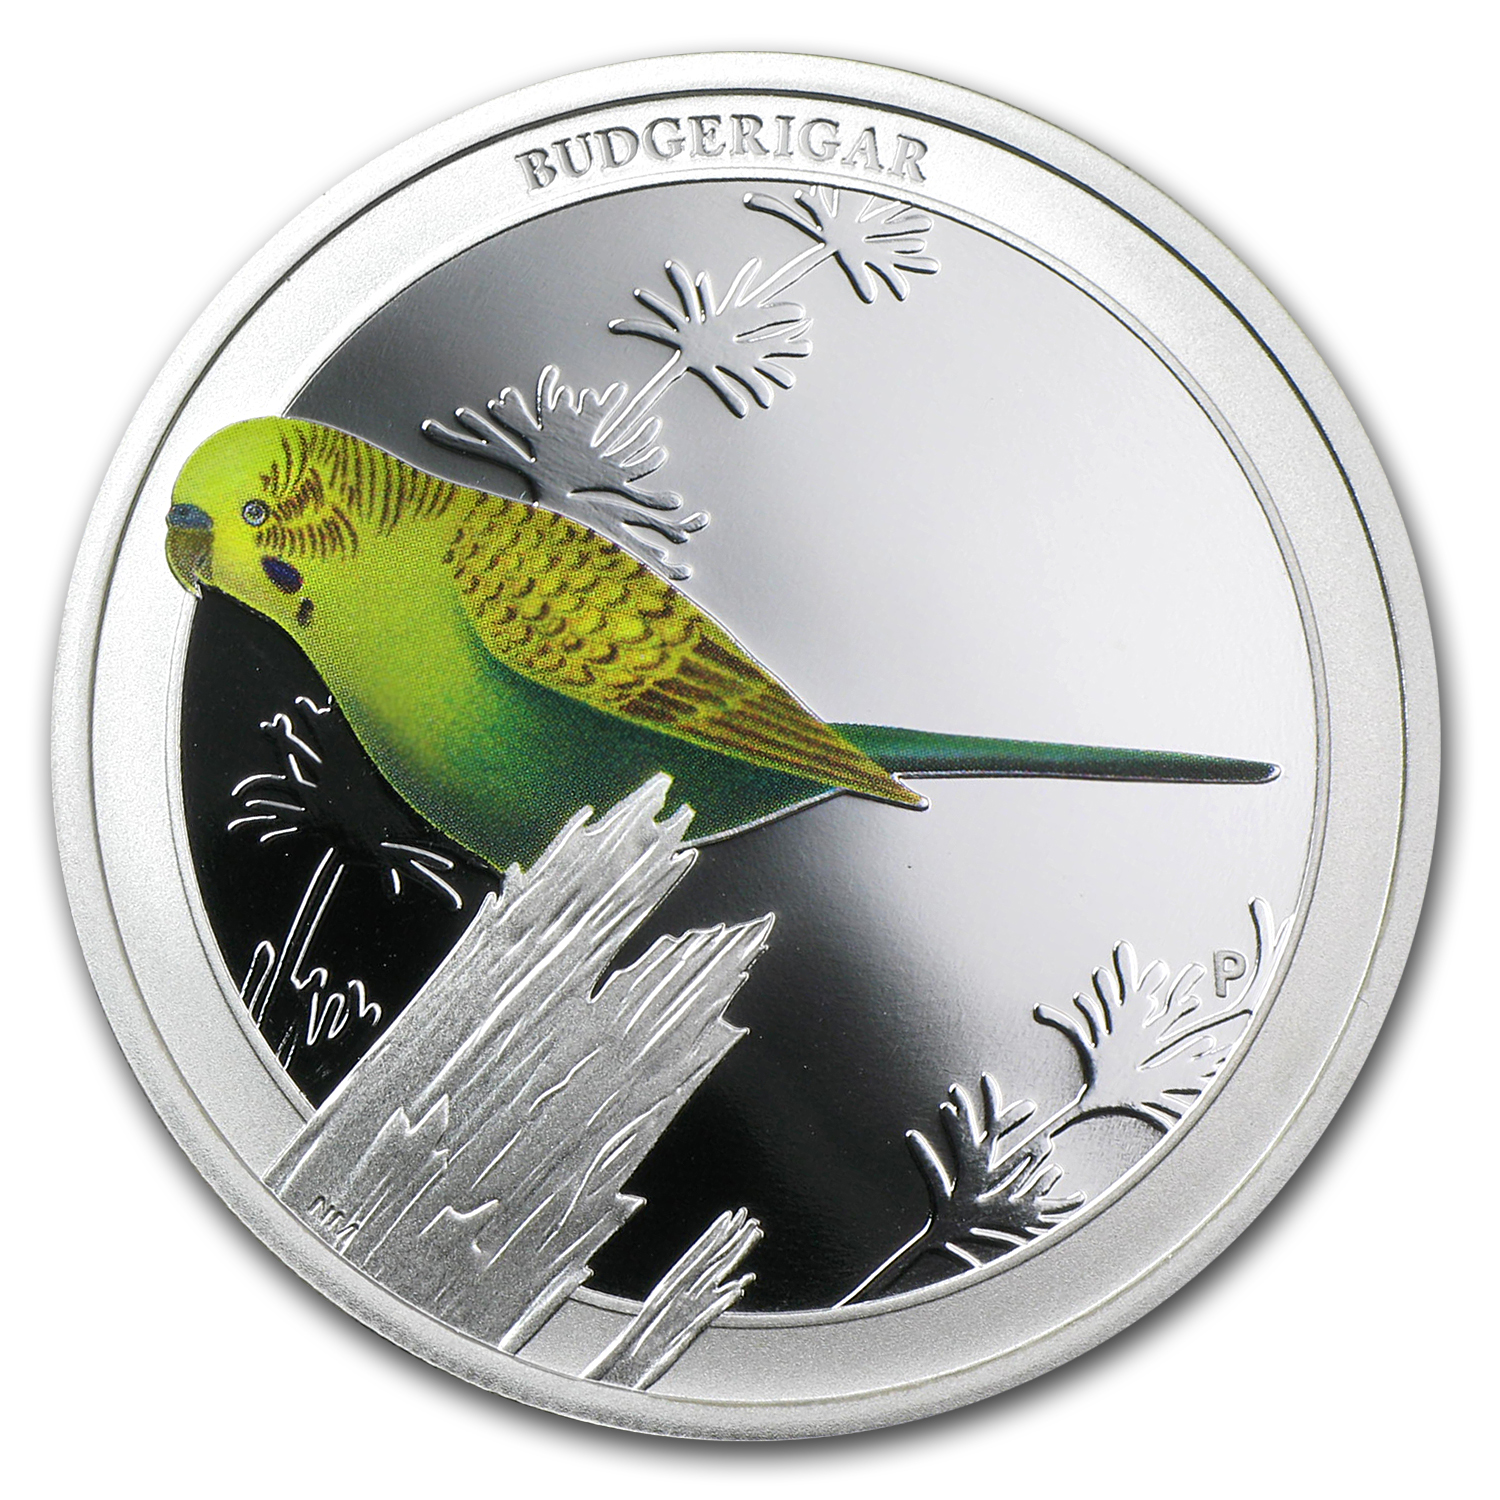 2013 1/2 oz Silver Australian Budgerigar Proof